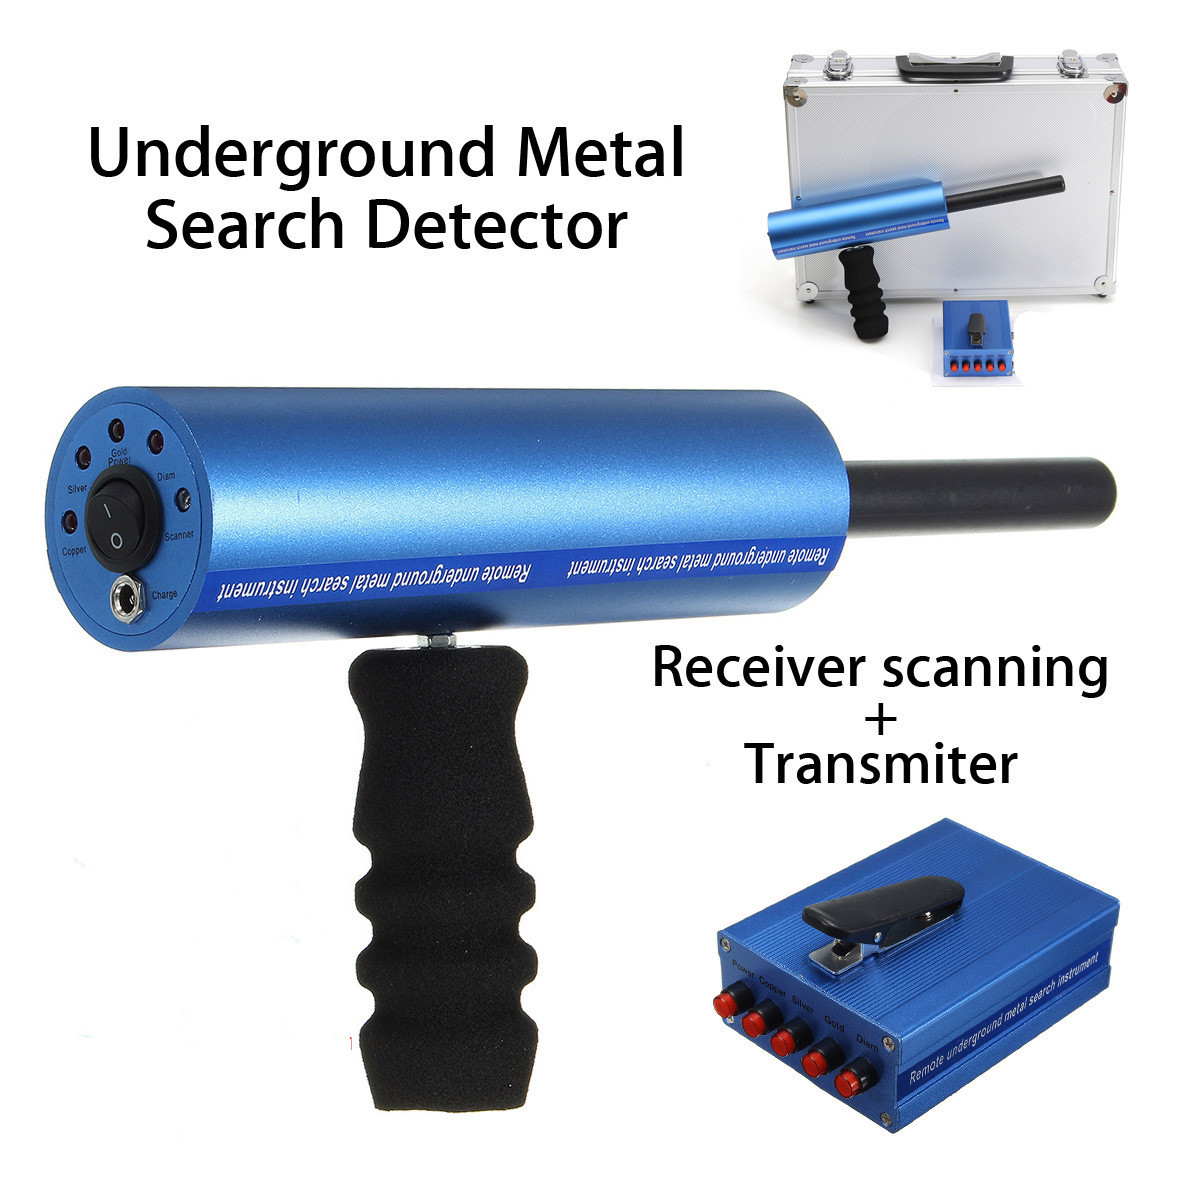 6pcs/Set Professtional Underground Metal Detector Adjustable Gold Detectors Treasure Tracker Seeker Searcher+Transmitter professtional md 4040 underground metal detector adjustable gold detectors treasure hunter tracker seeker metal circuit detector